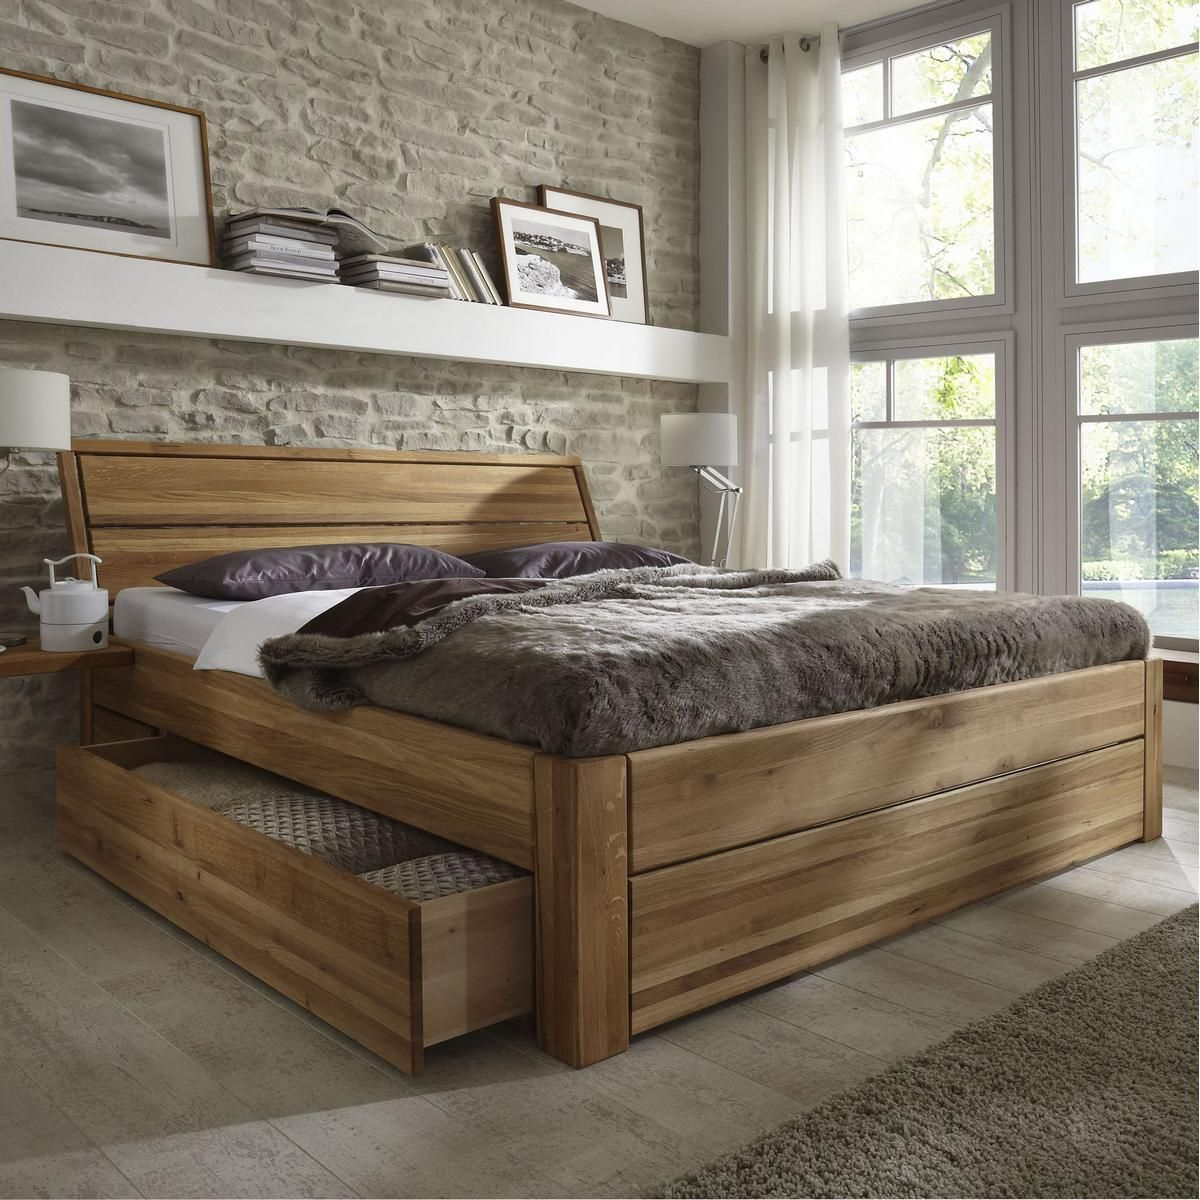 massivholz schubladenbett 180x200 holzbett bett eiche massiv ge lt idea pinterest bett. Black Bedroom Furniture Sets. Home Design Ideas